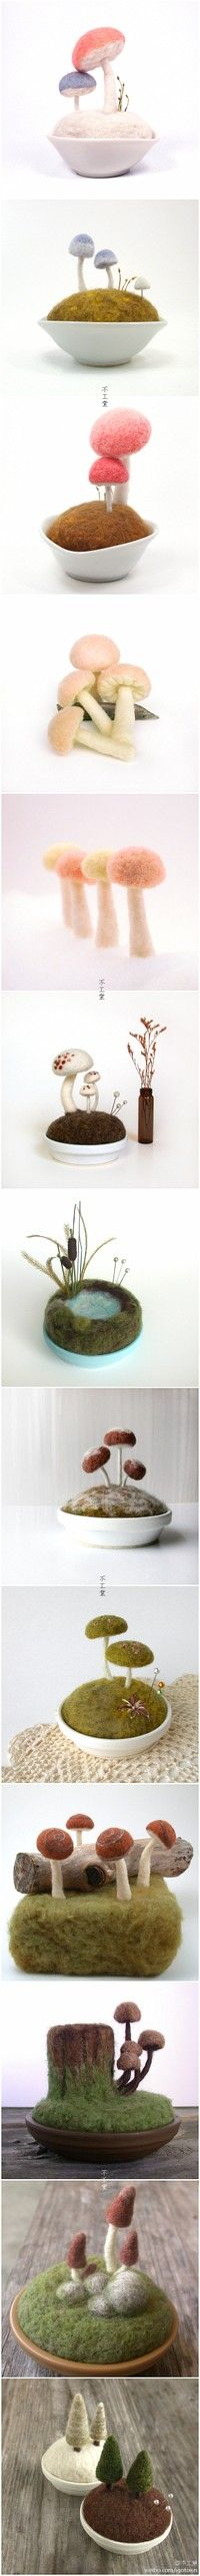 Teacup gardens from felted flowers,mushrooms,toadstools grasses and ponds pretty but minimal,modern contemporary designs ,cute ,japan style kawaii